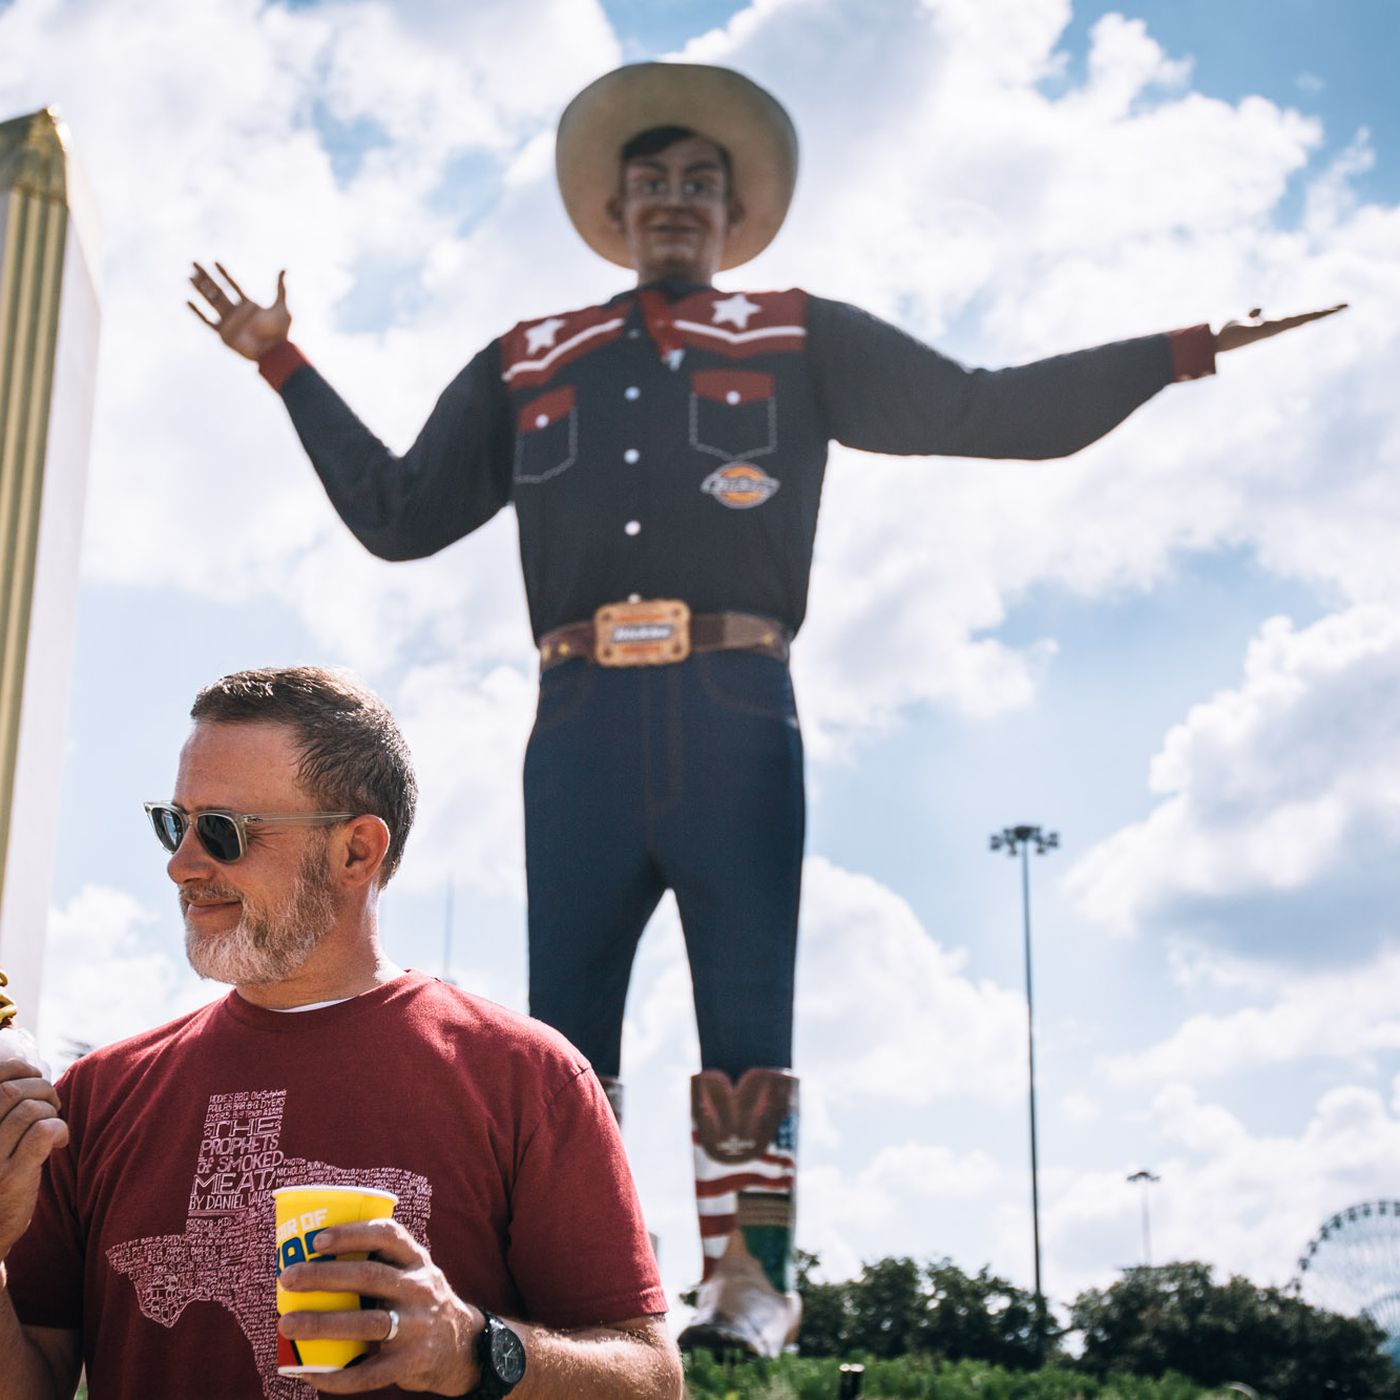 eater.com - Amy McCarthy - The 2020 State Fair of Texas Is Officially Cancelled